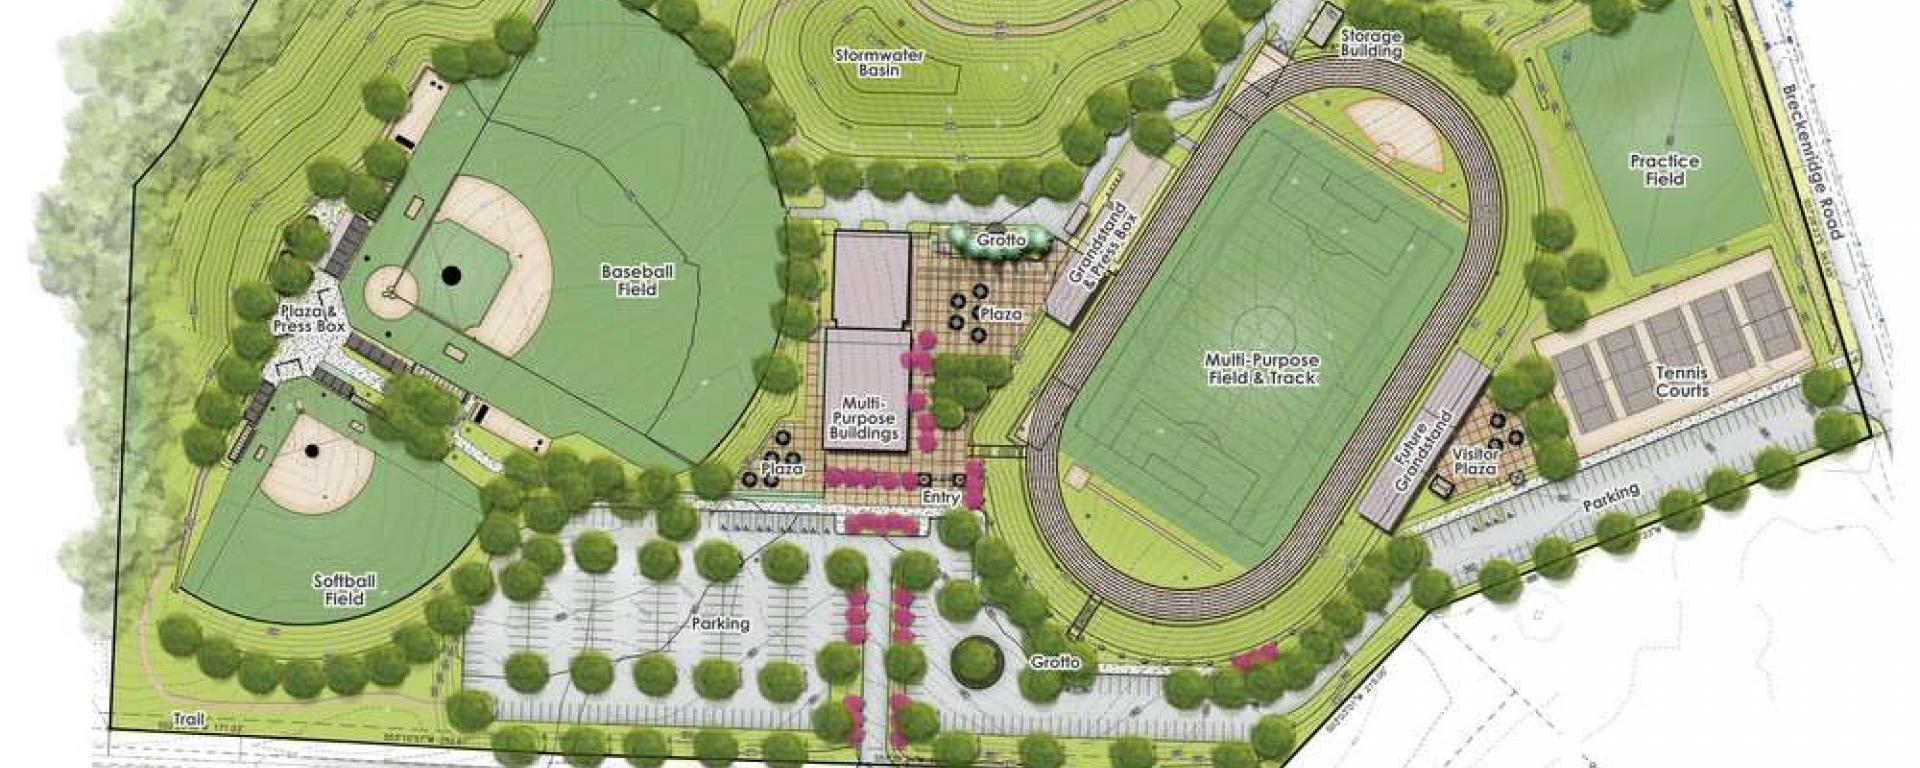 BBHS Athletic Complex Plan Rendering